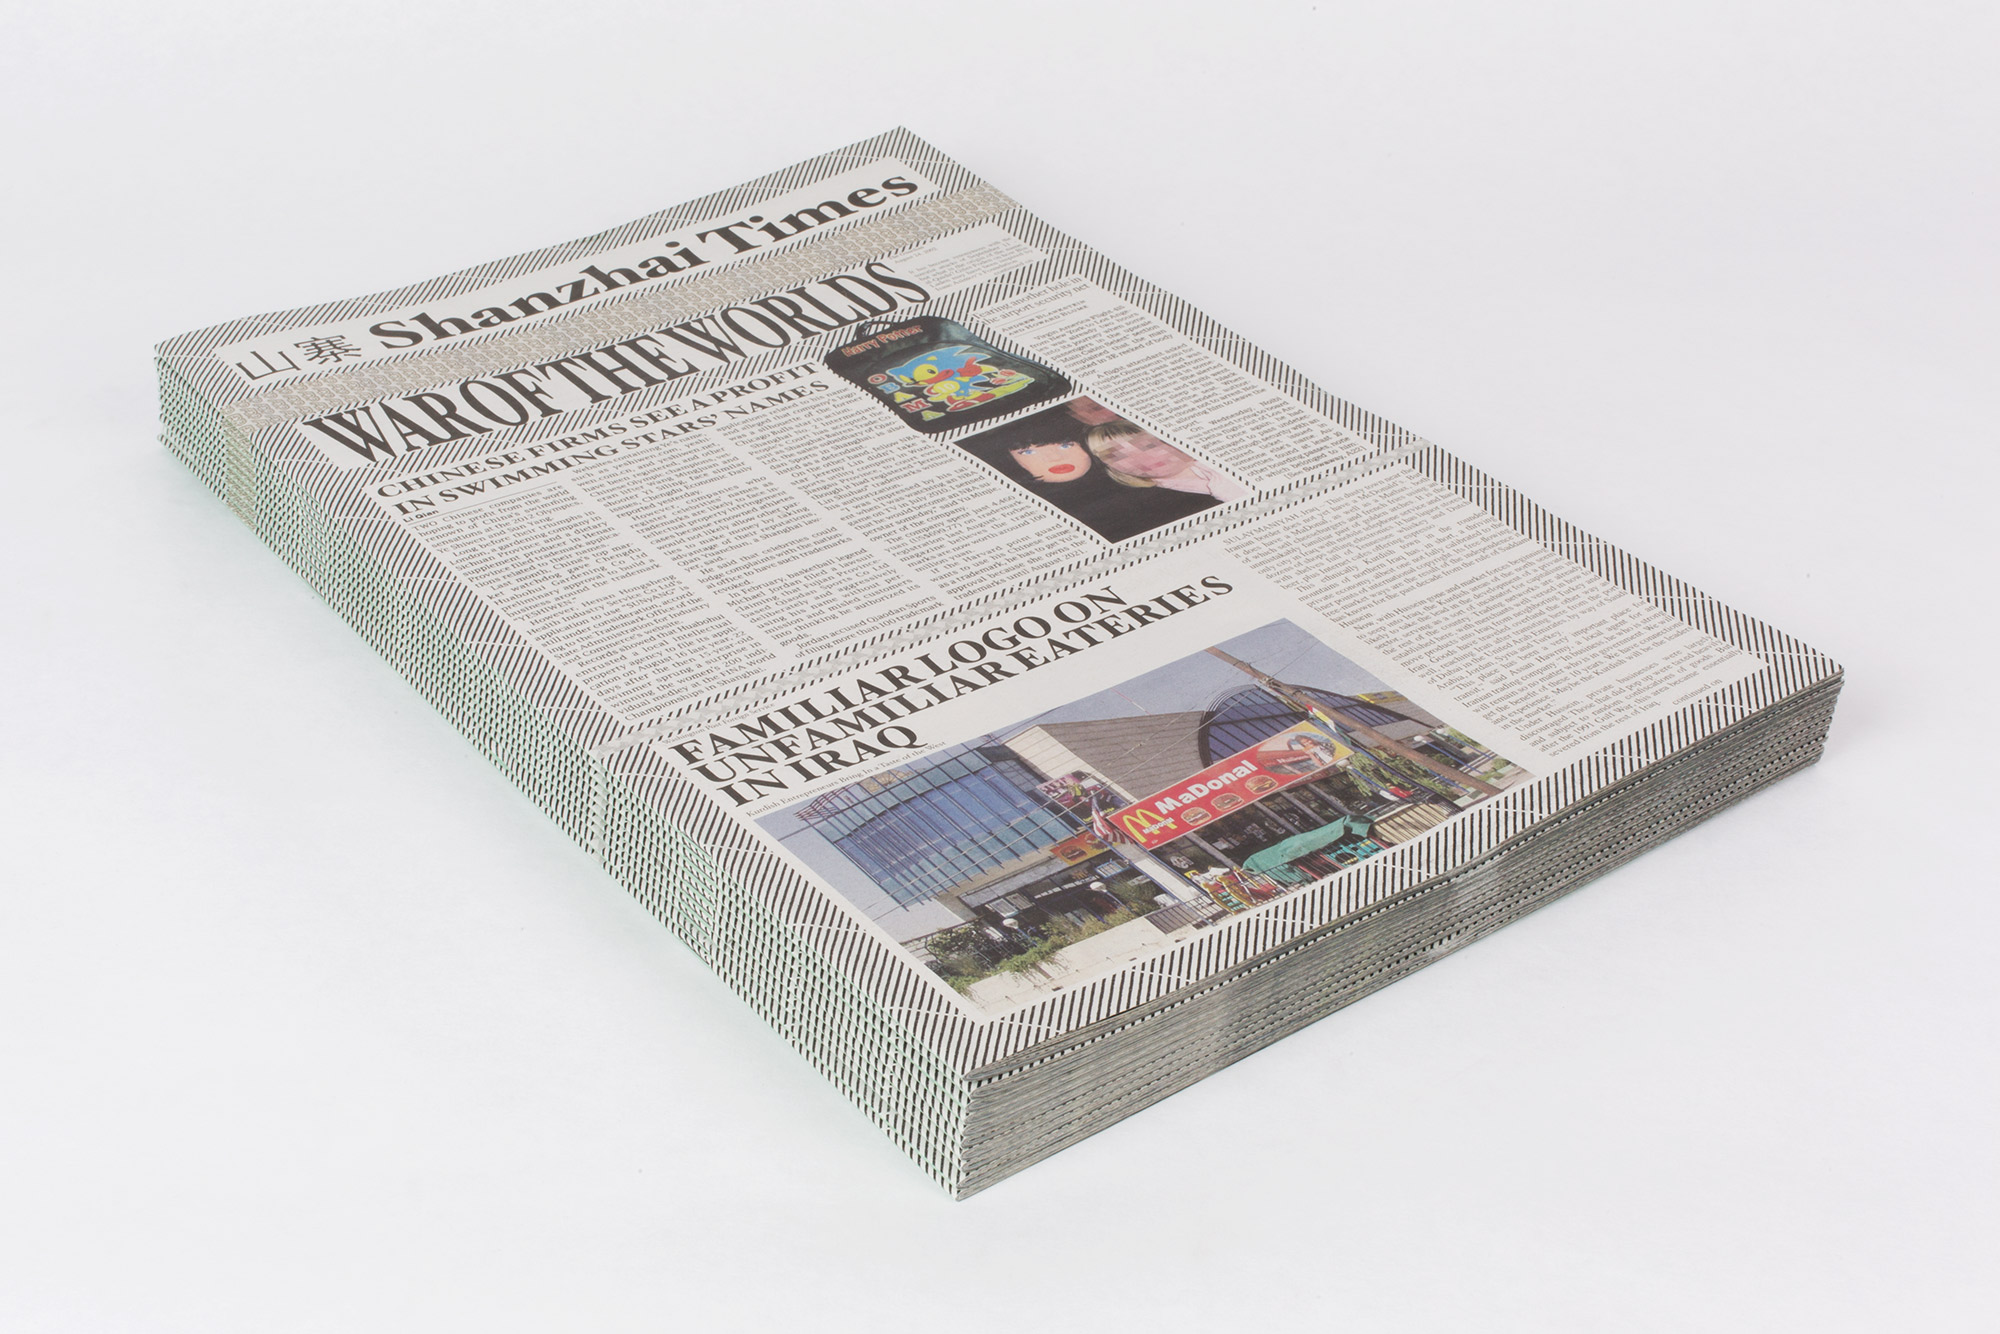 Shanzhai Times , Old News #9.5, 2015, Newsprint, 15 1/2 x 10 1/2 inches    Old News is a newsprint edition presenting a selection of articles and pictures from newspapers and magazines by international artist. Published on the occasion of  Old News (again) —curated by Jacob Fabricius, Le Centre National Édition Art Image, Chatou, France.